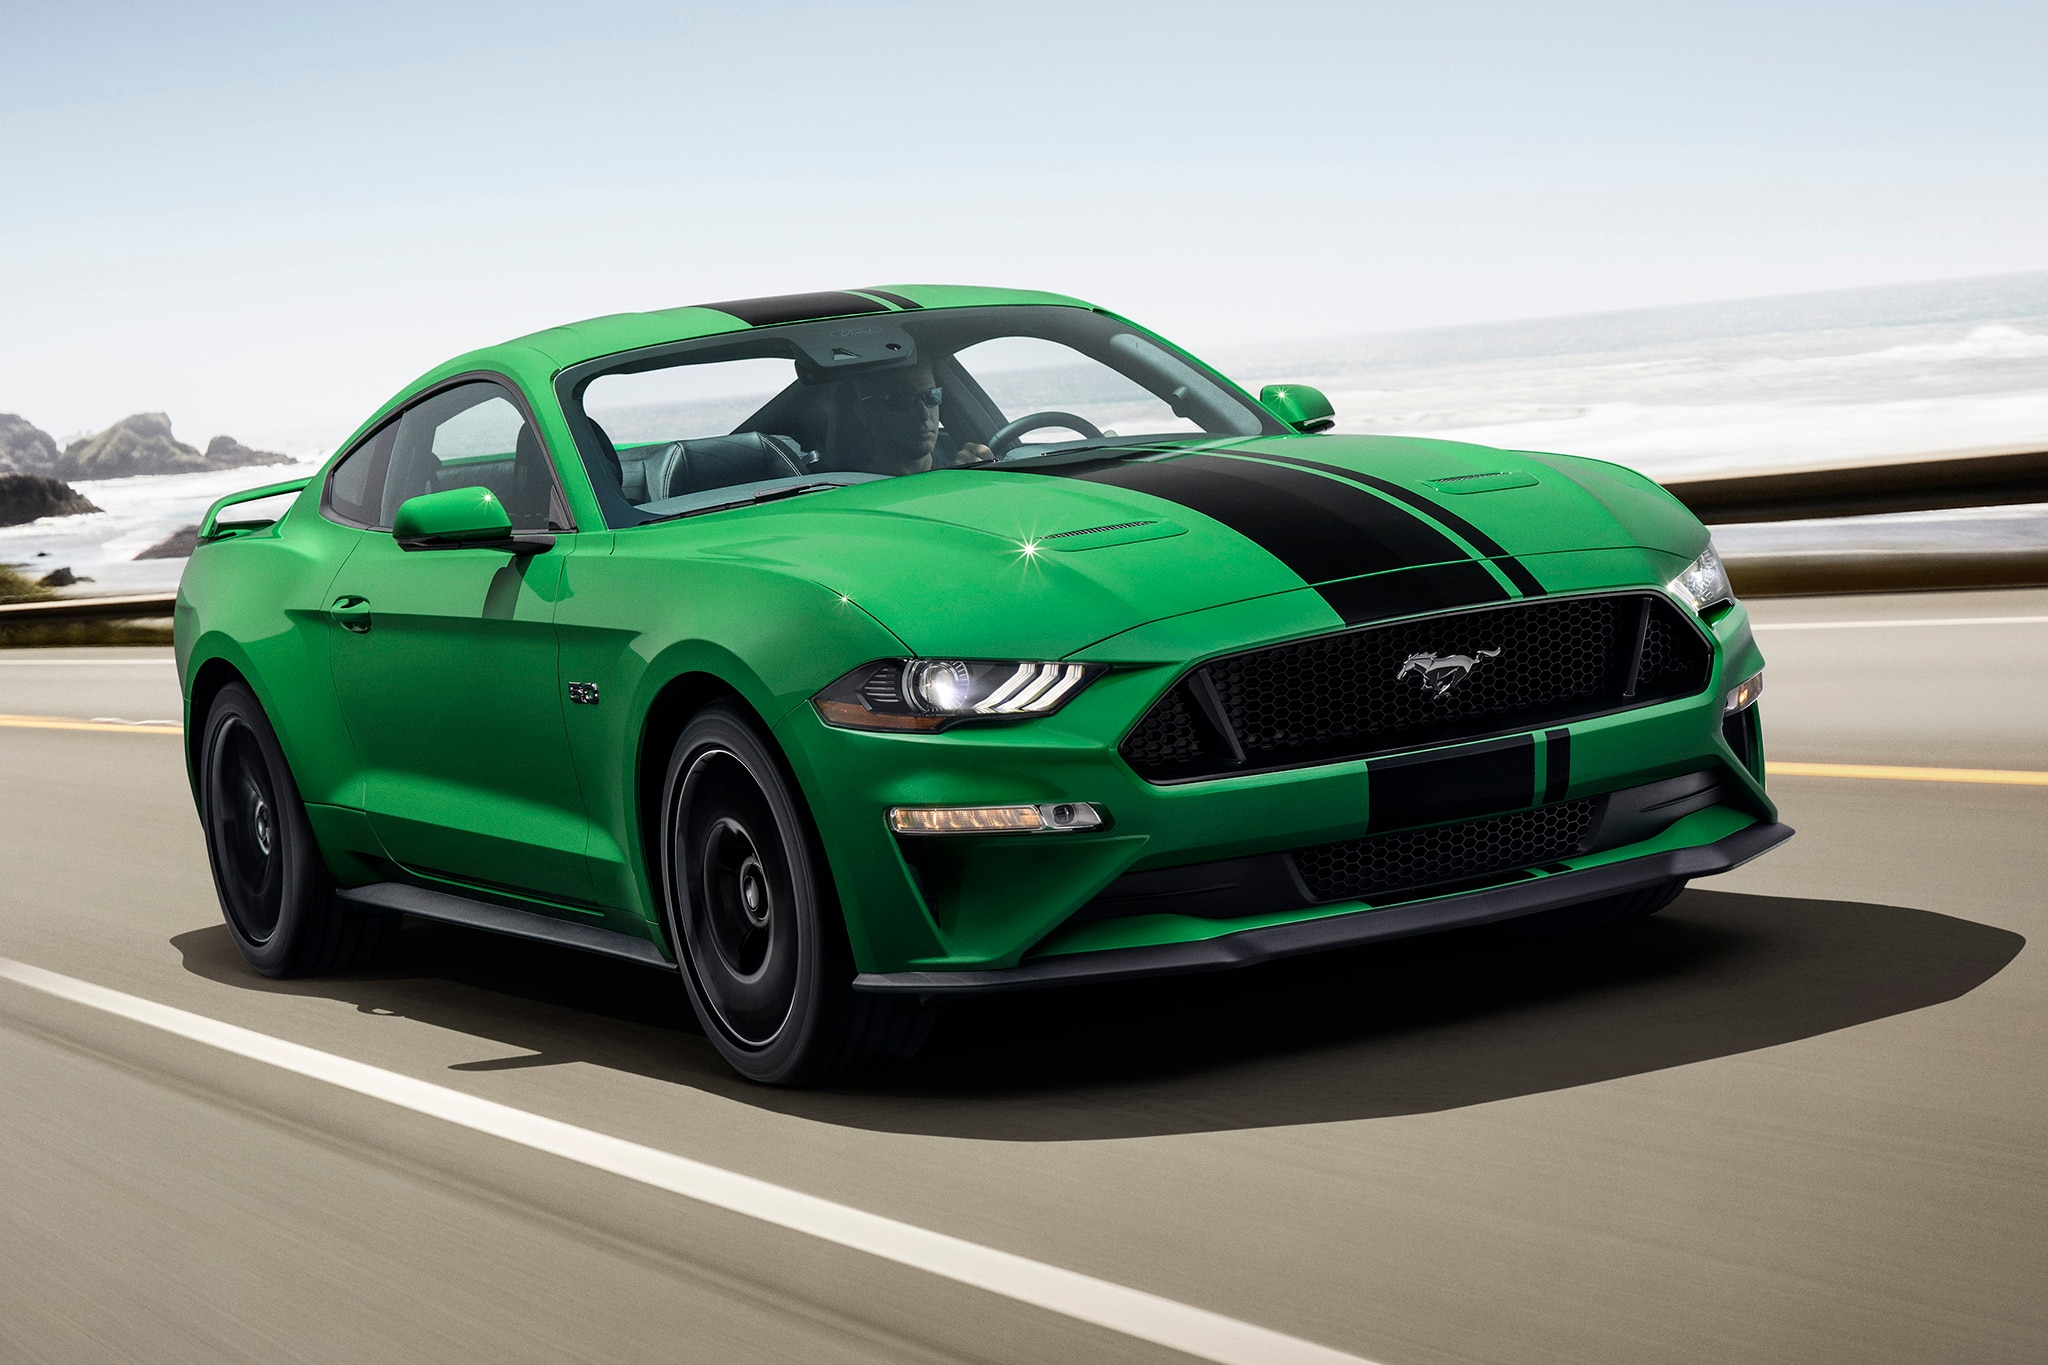 2019 Ford Mustang Gets a Splash of Need for Green | Automobile Magazine